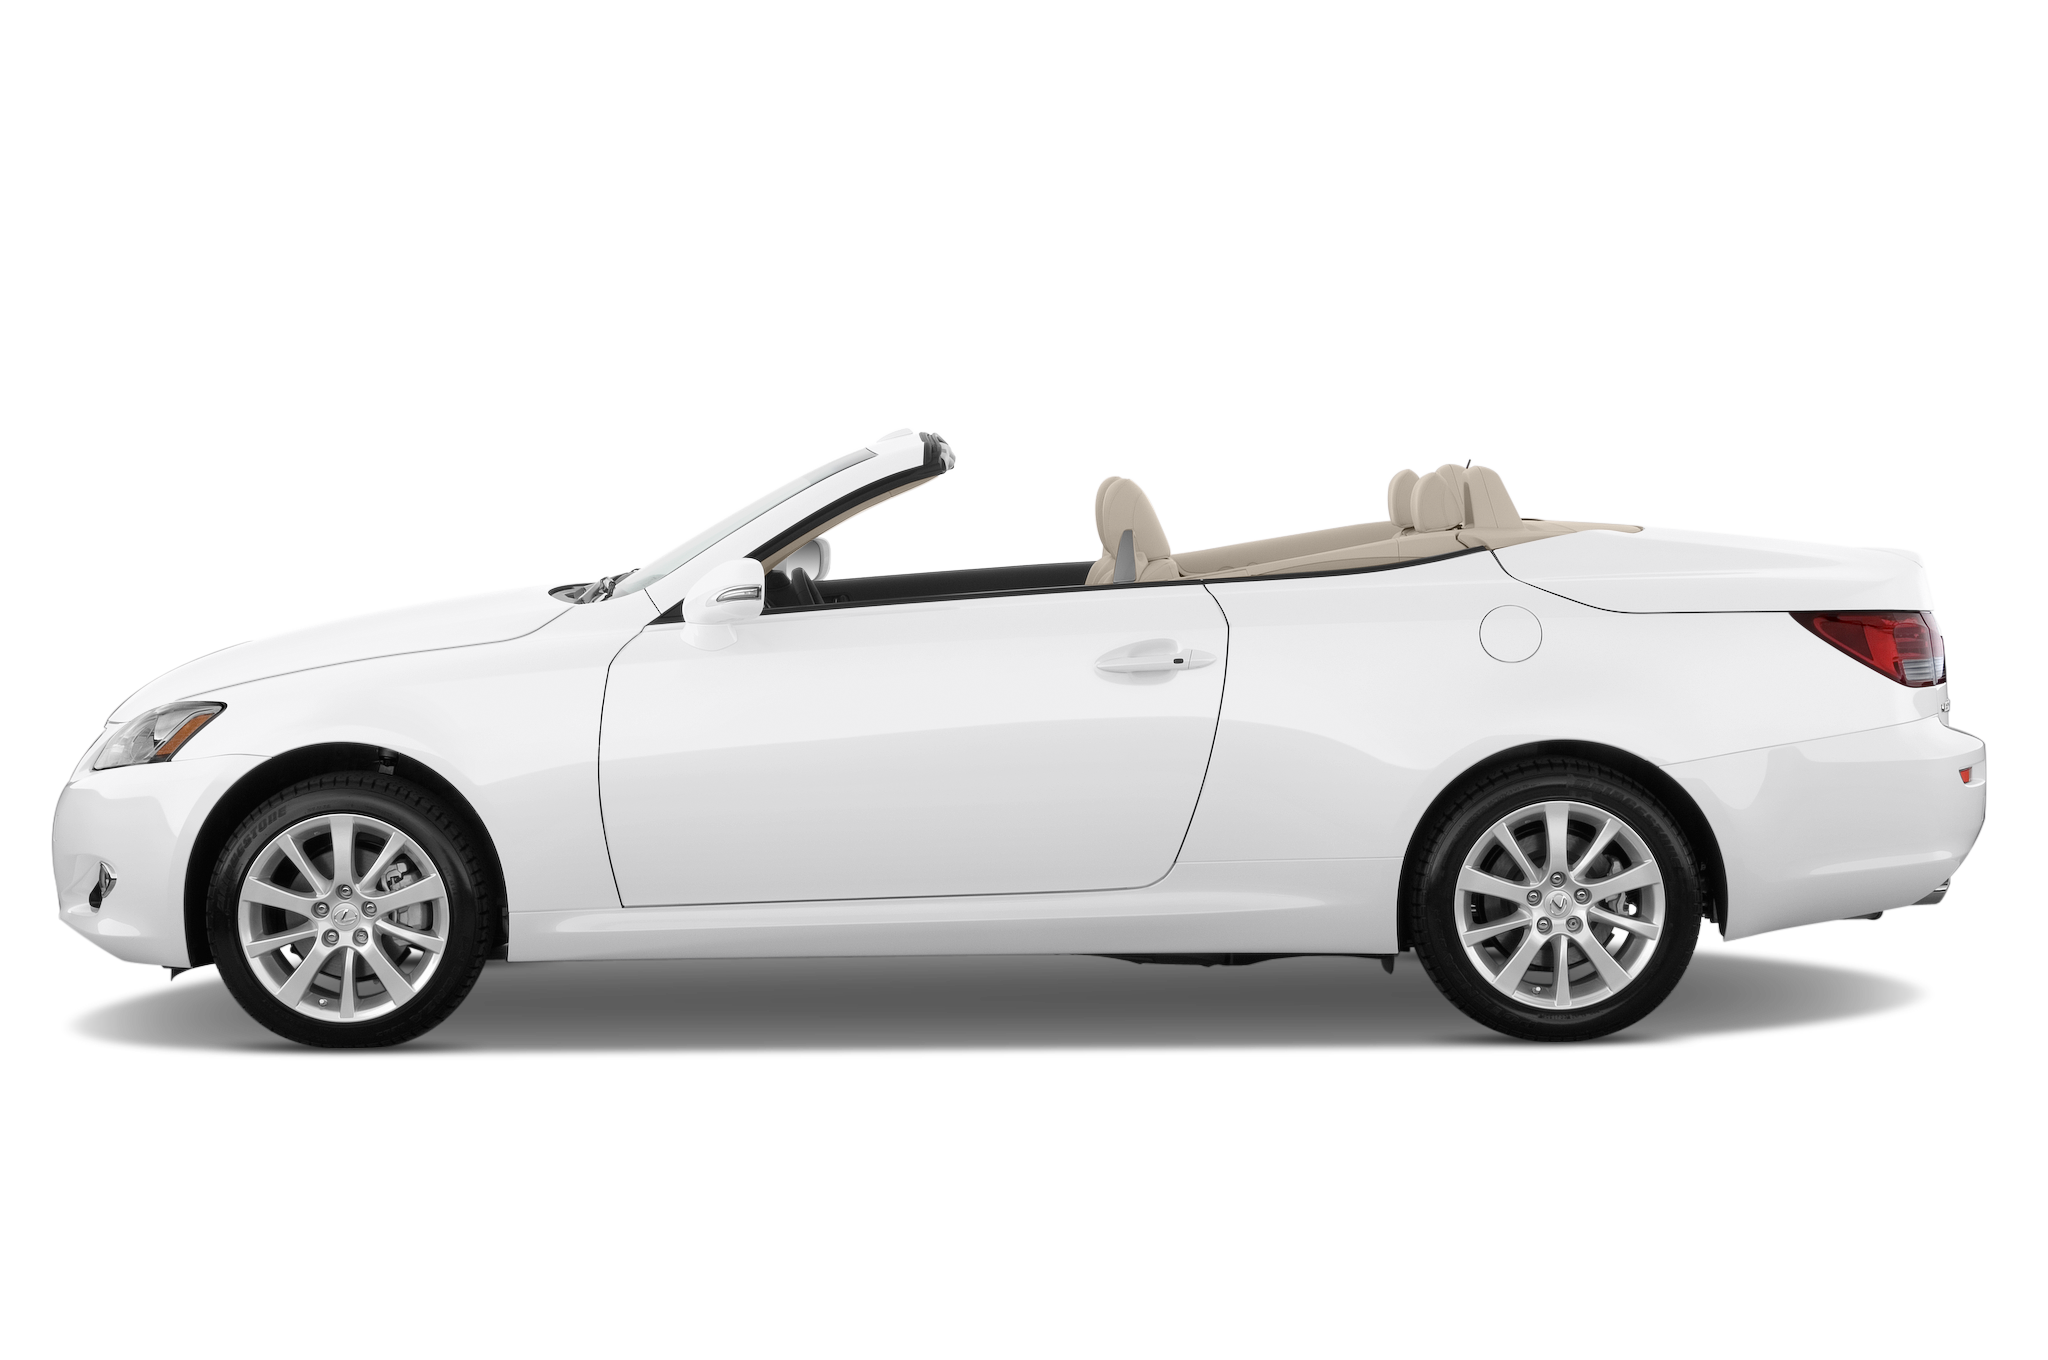 radka specs news blog s is makes photos convertible lexus car c